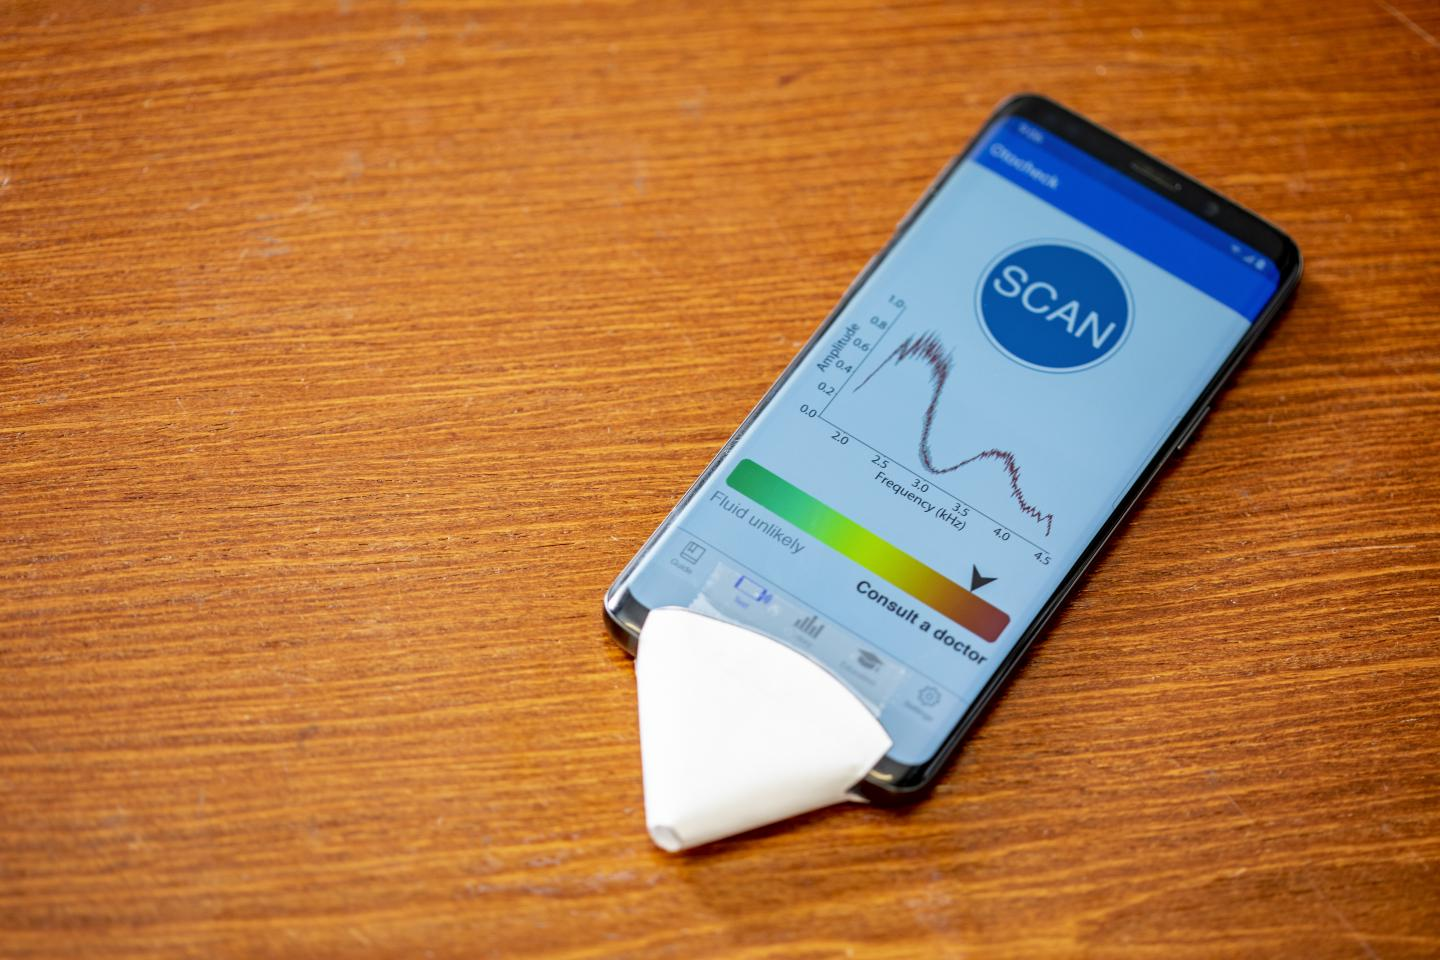 This smartphone app hears ear infections using a paper cone